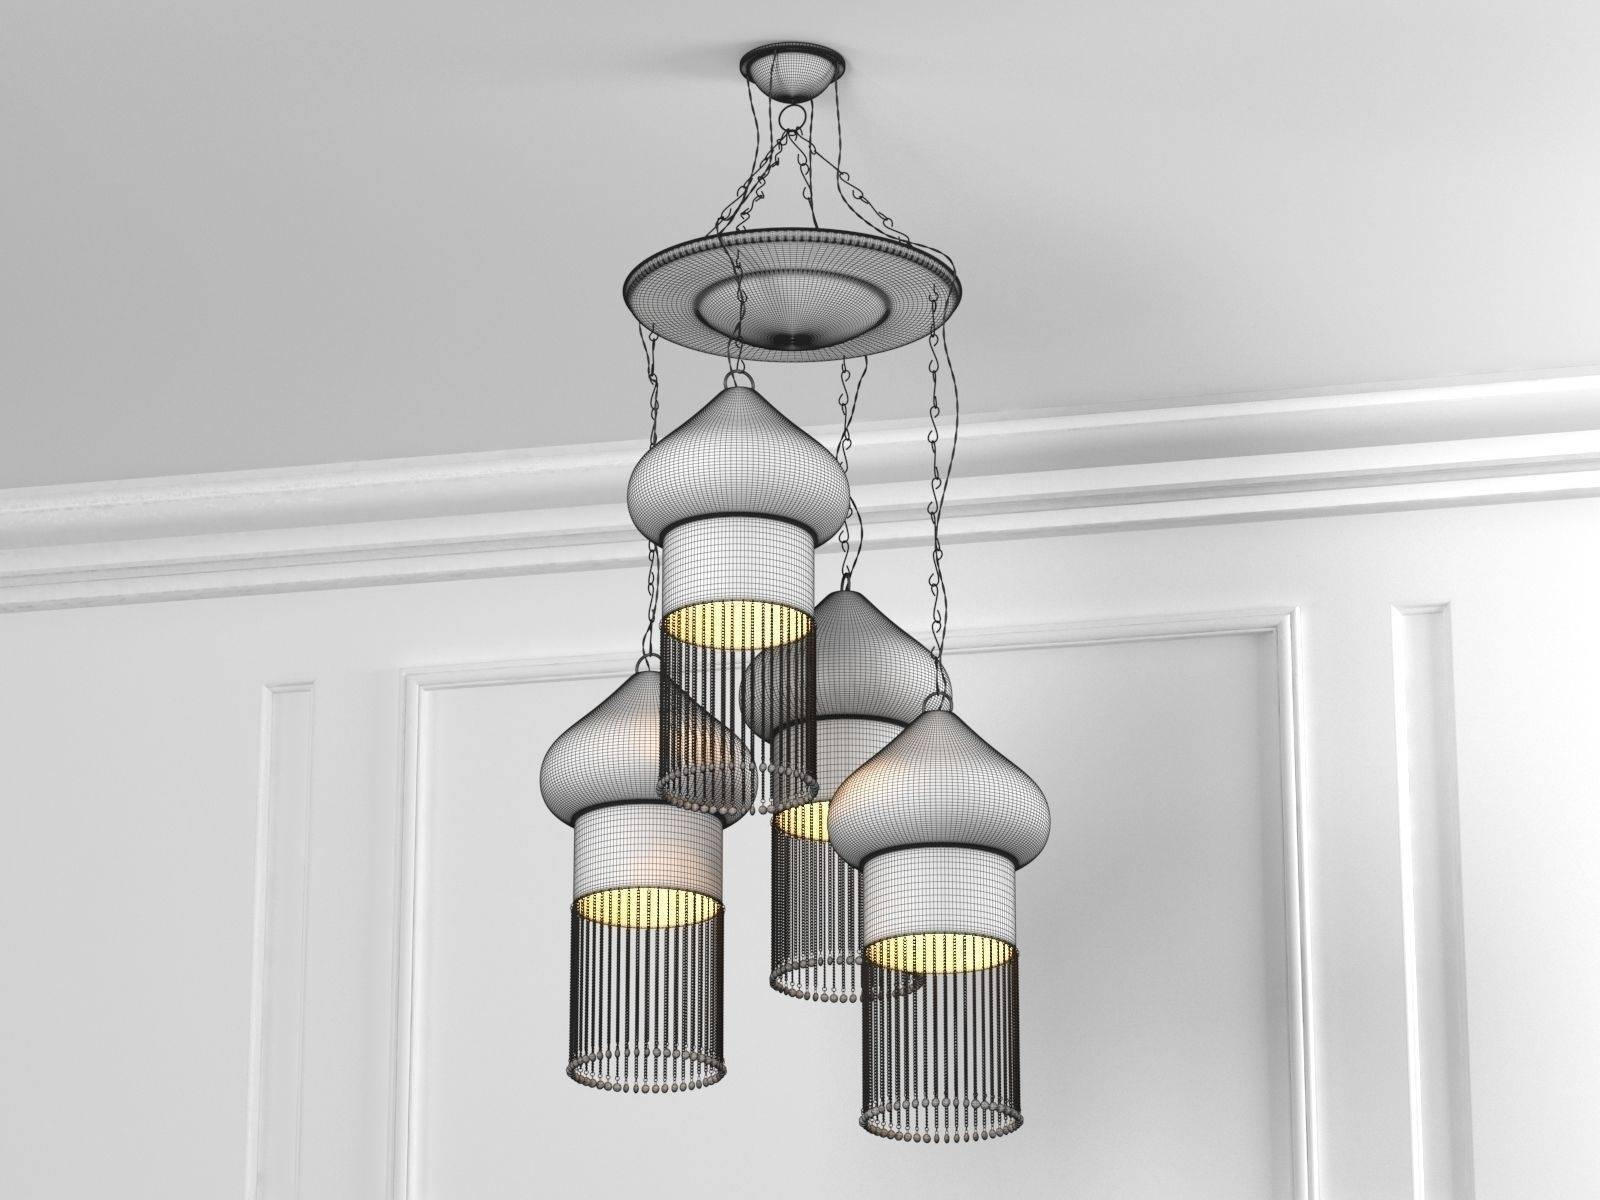 Decorative Farmhouse Pendant Light Fixtures intended for Farmhouse Pendant Lights Fixtures (Image 6 of 15)